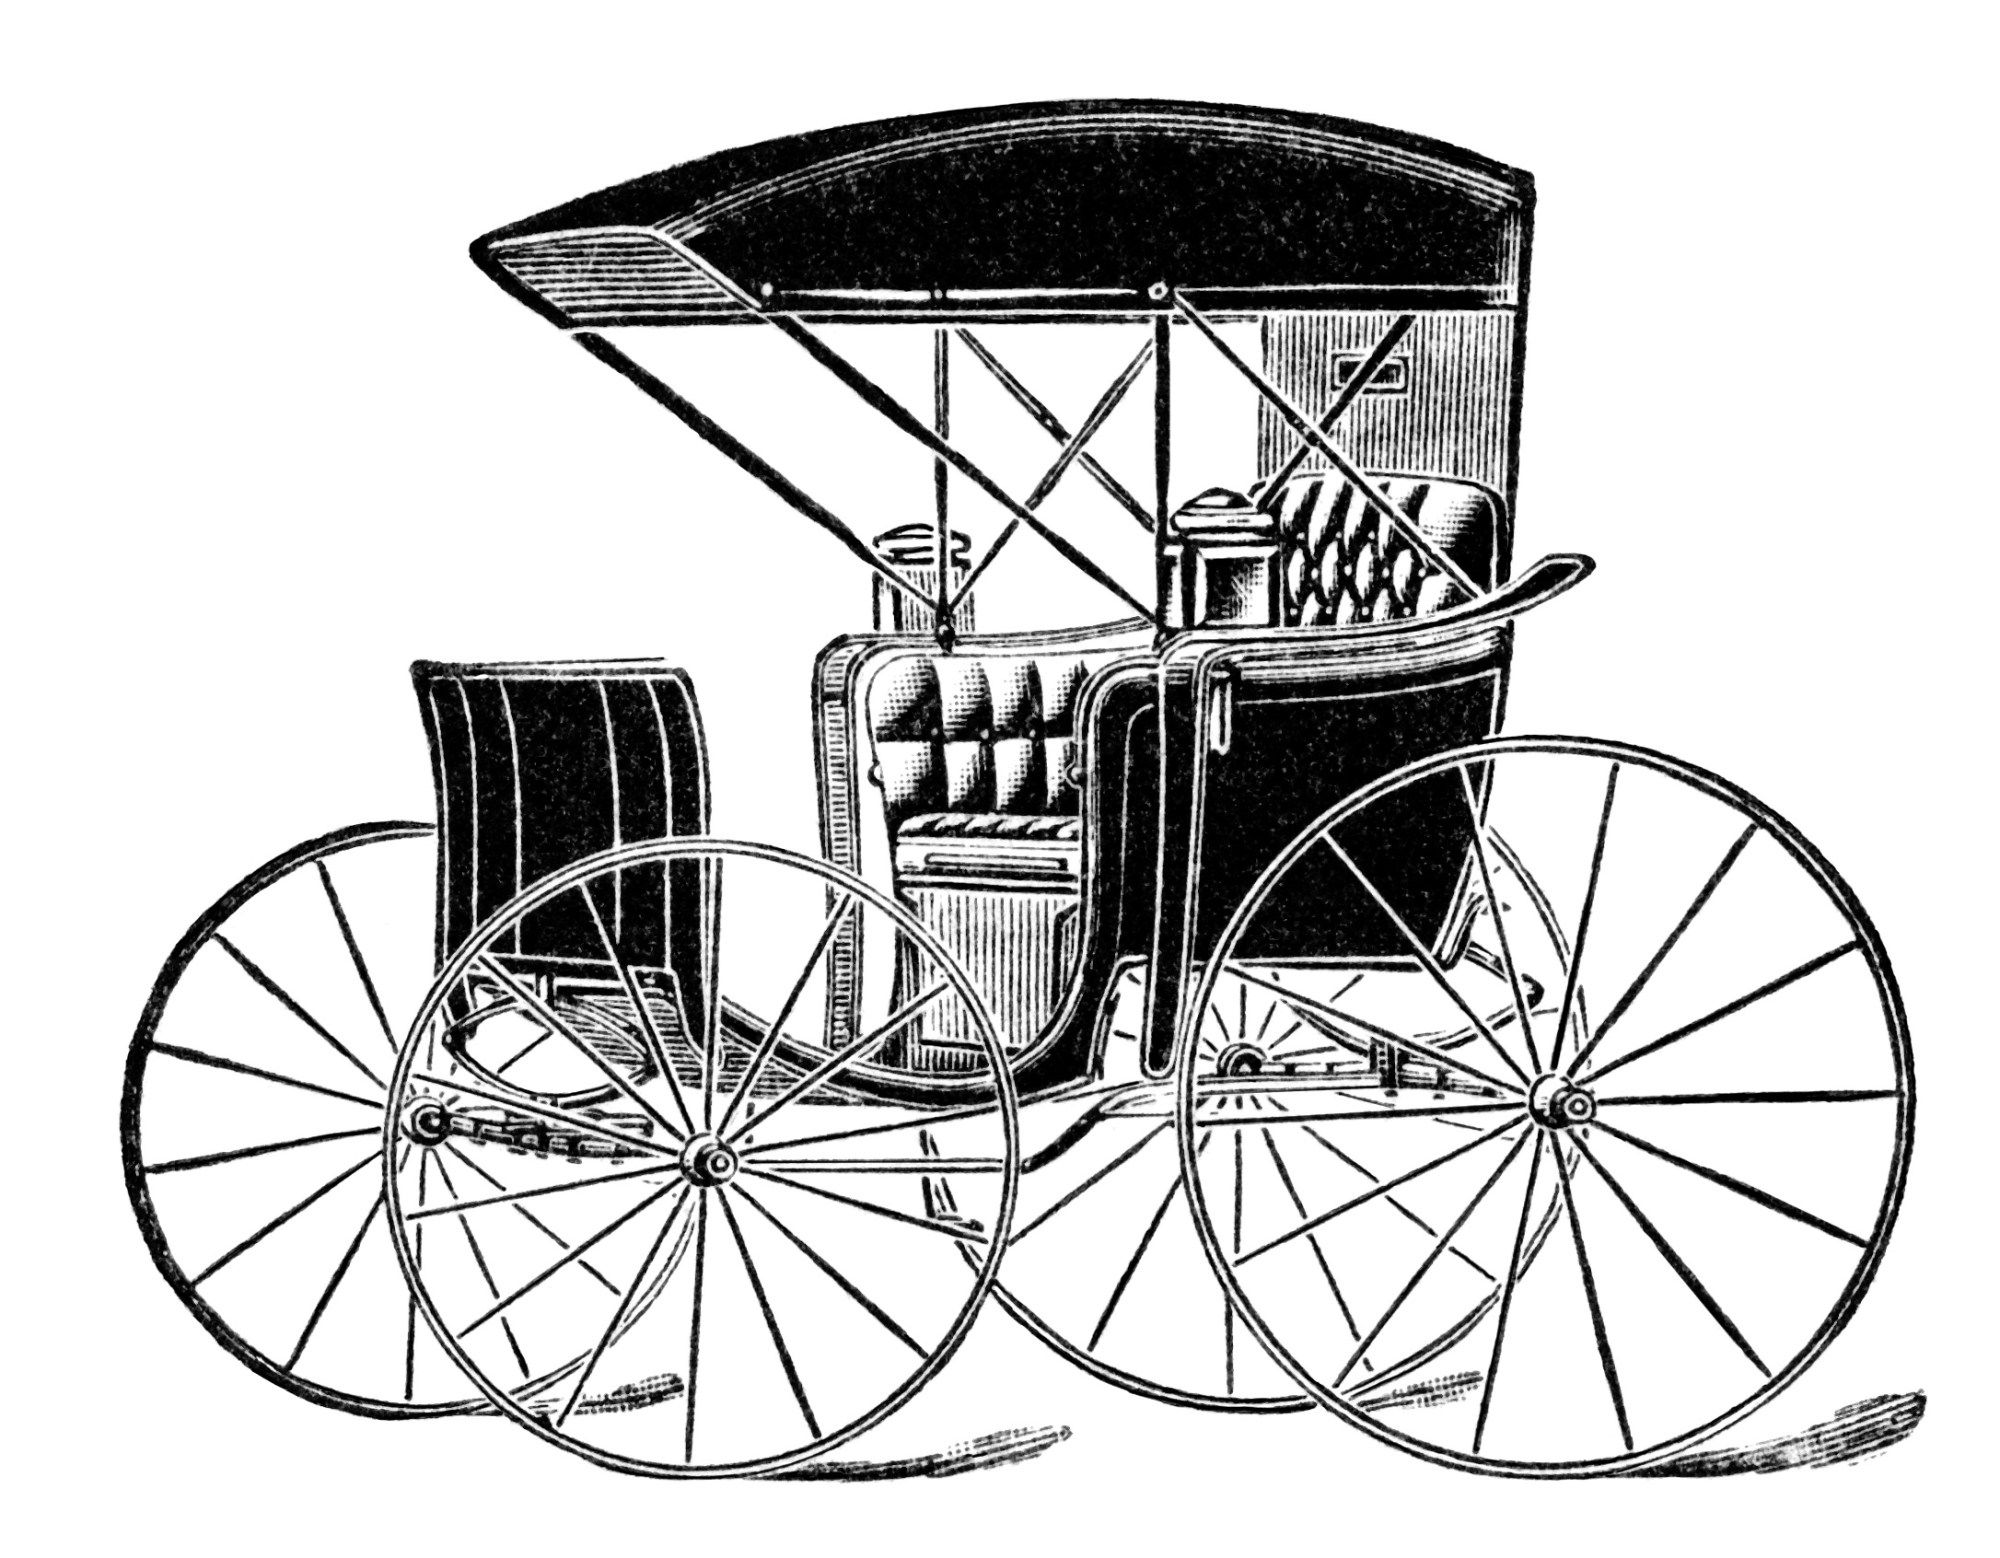 Clipart image of horse and buggy and car png free horse drawn carriage clip art, vintage transportation image, black ... png free